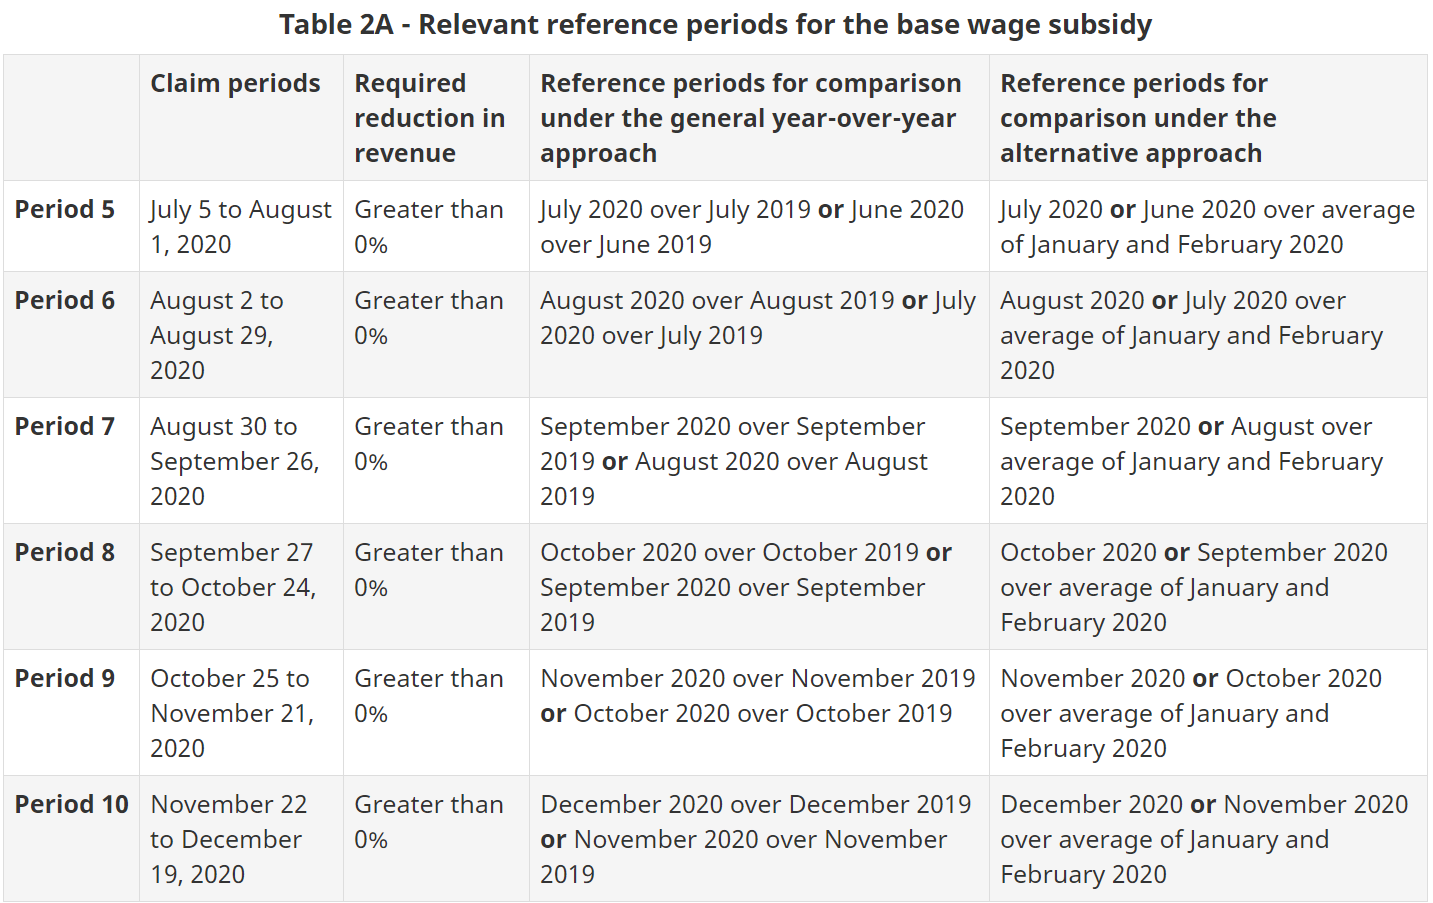 Table 2A - Relevant reference periods - base wage